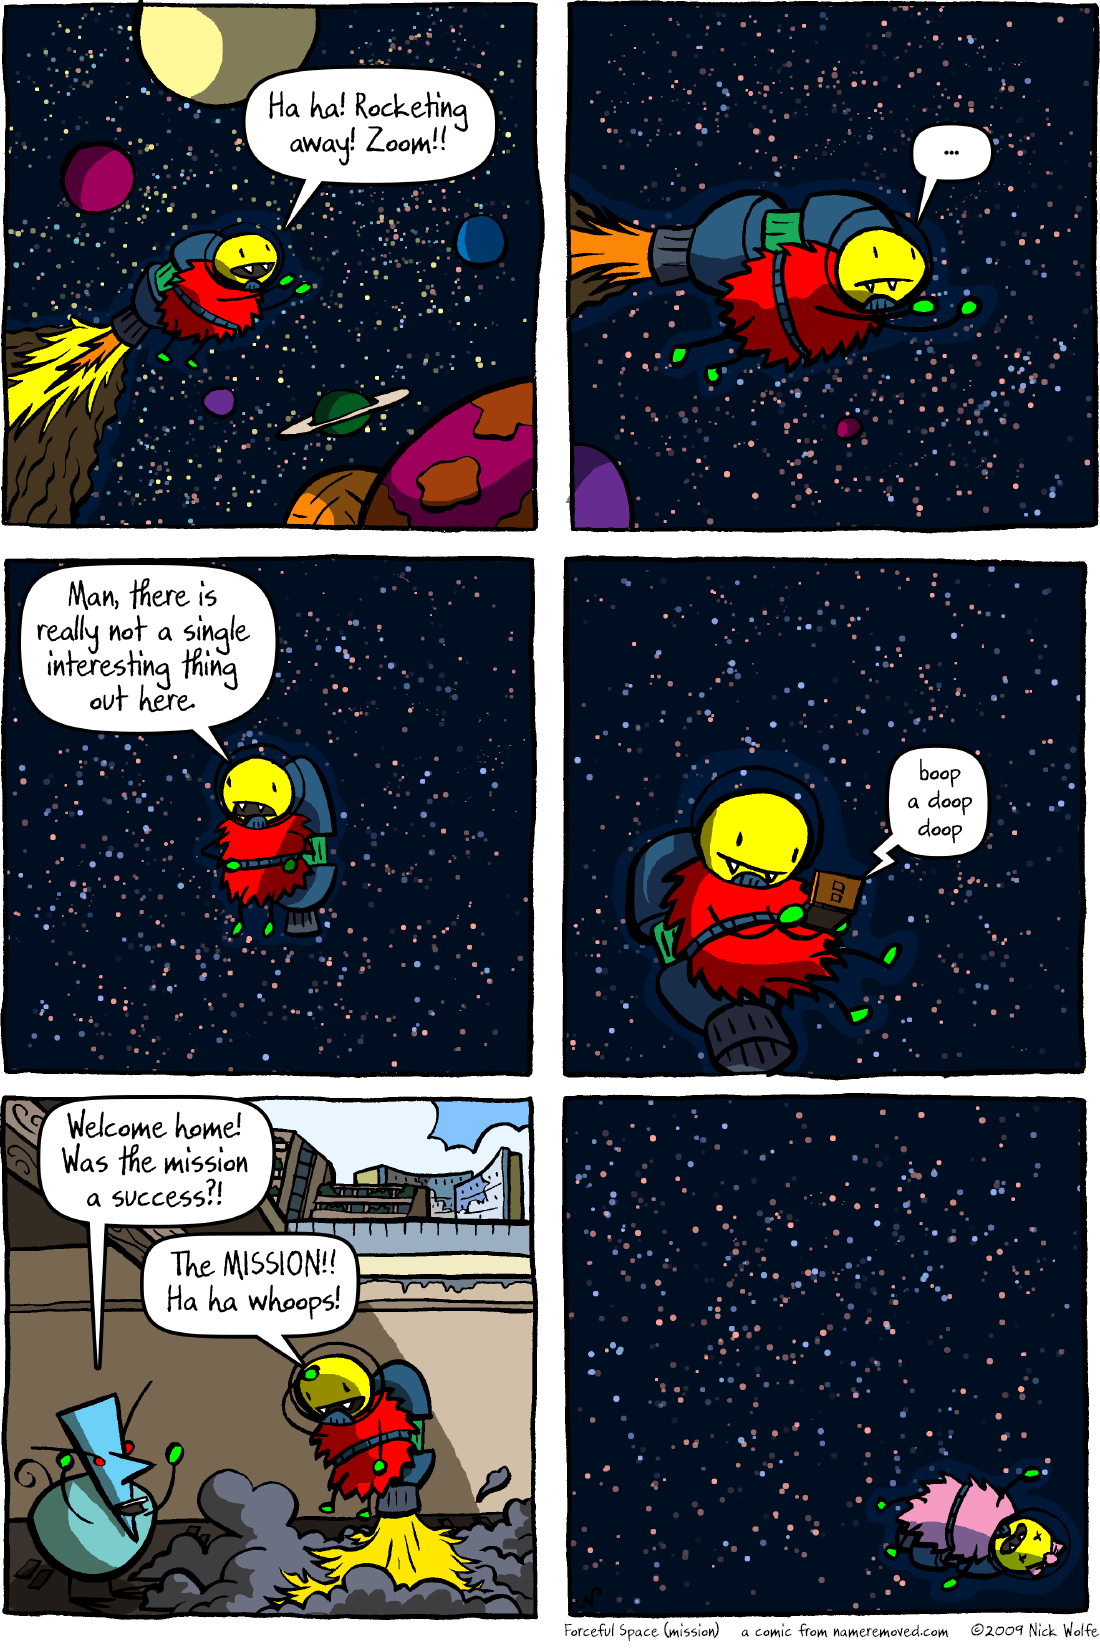 Forceful Space (mission)